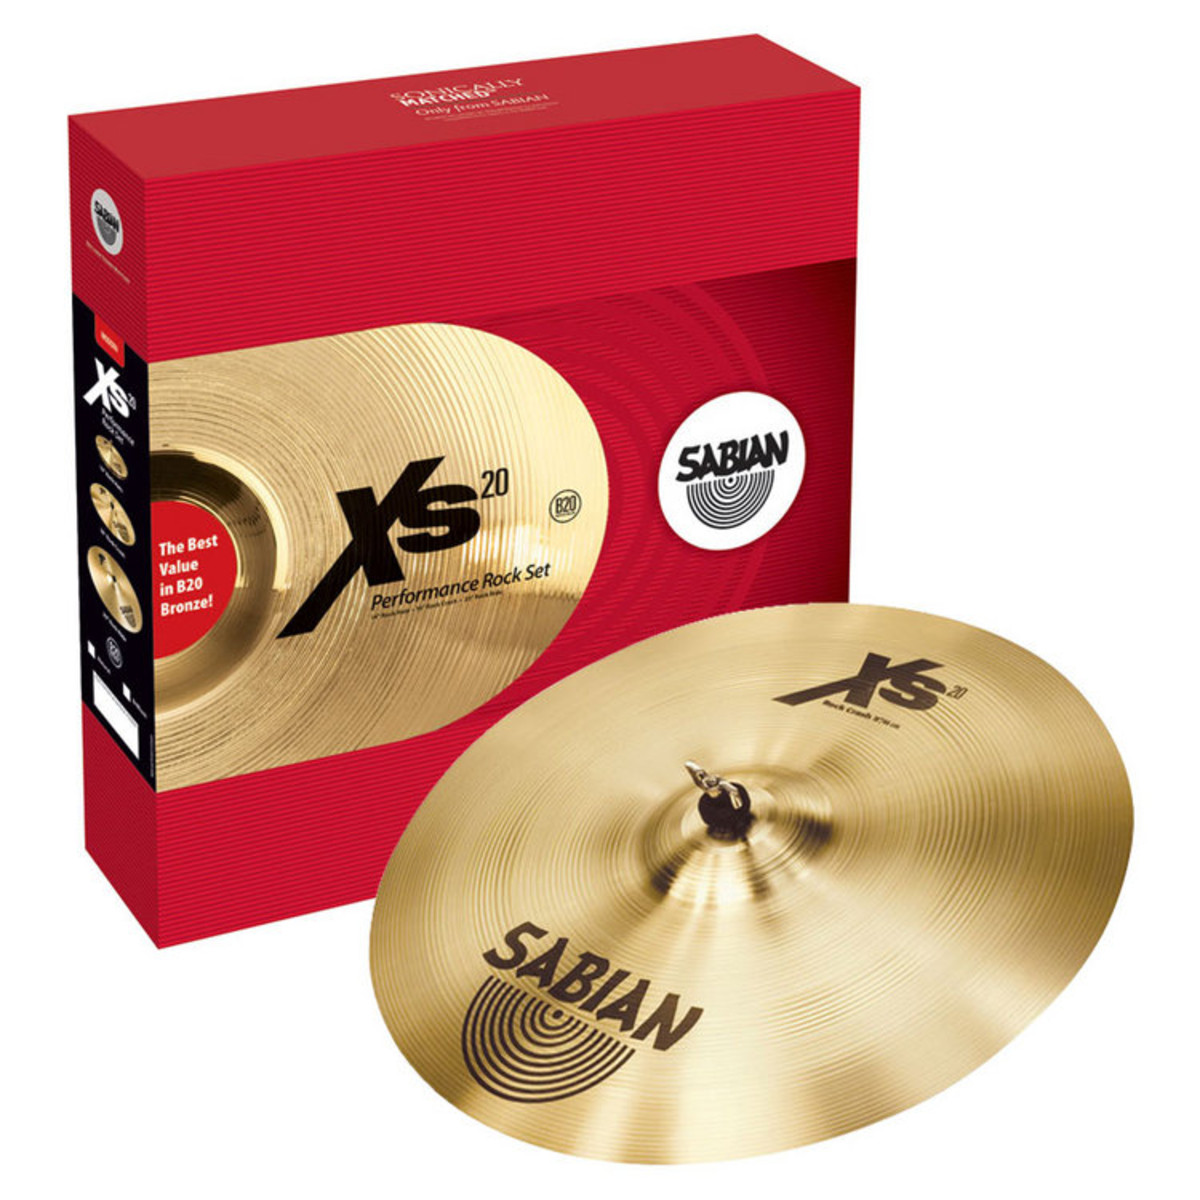 DISC Sabian XS20 Rock Set, Brilliant Finish + Free 18